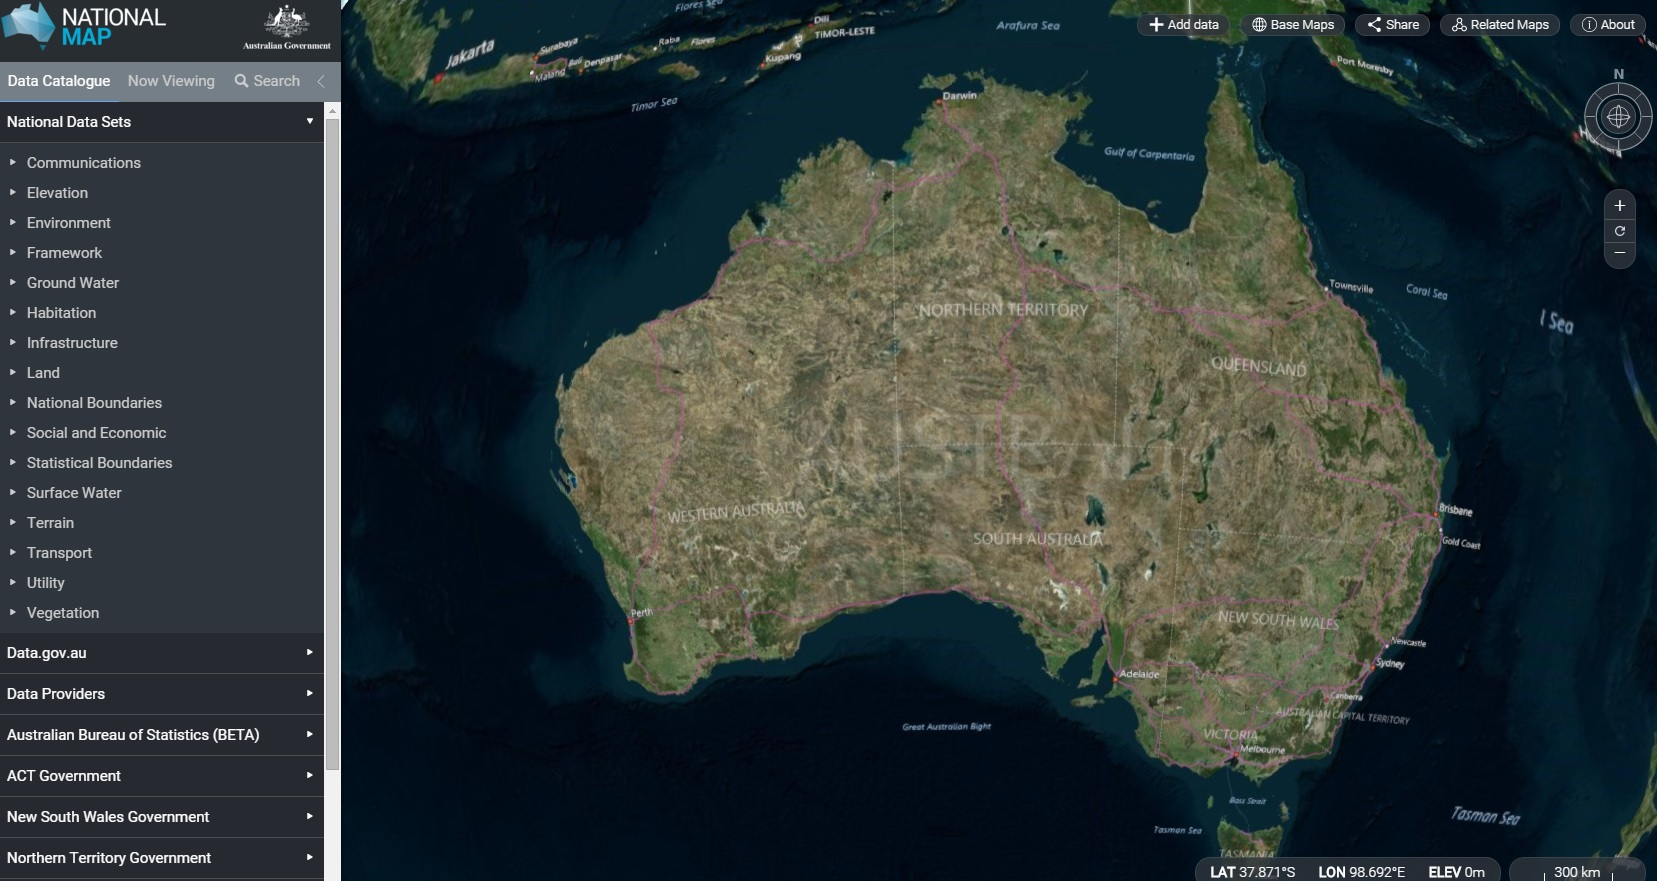 Screenshot of a map of Australia with datapoints from nationalmap.gov.au.